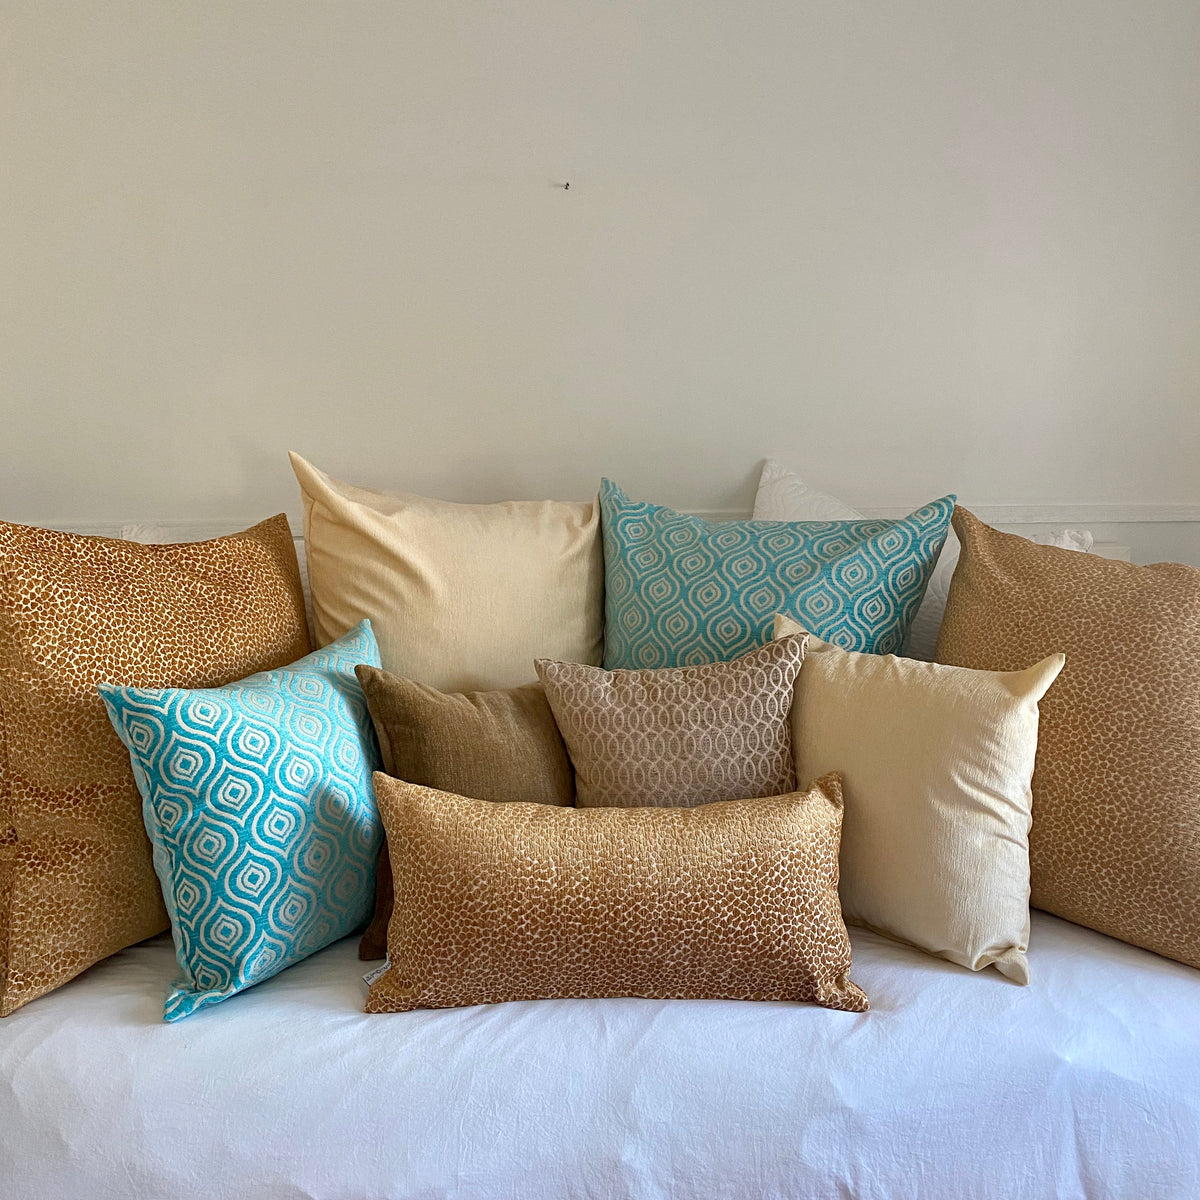 Pile of Pillows in Teal, Gold and Brown